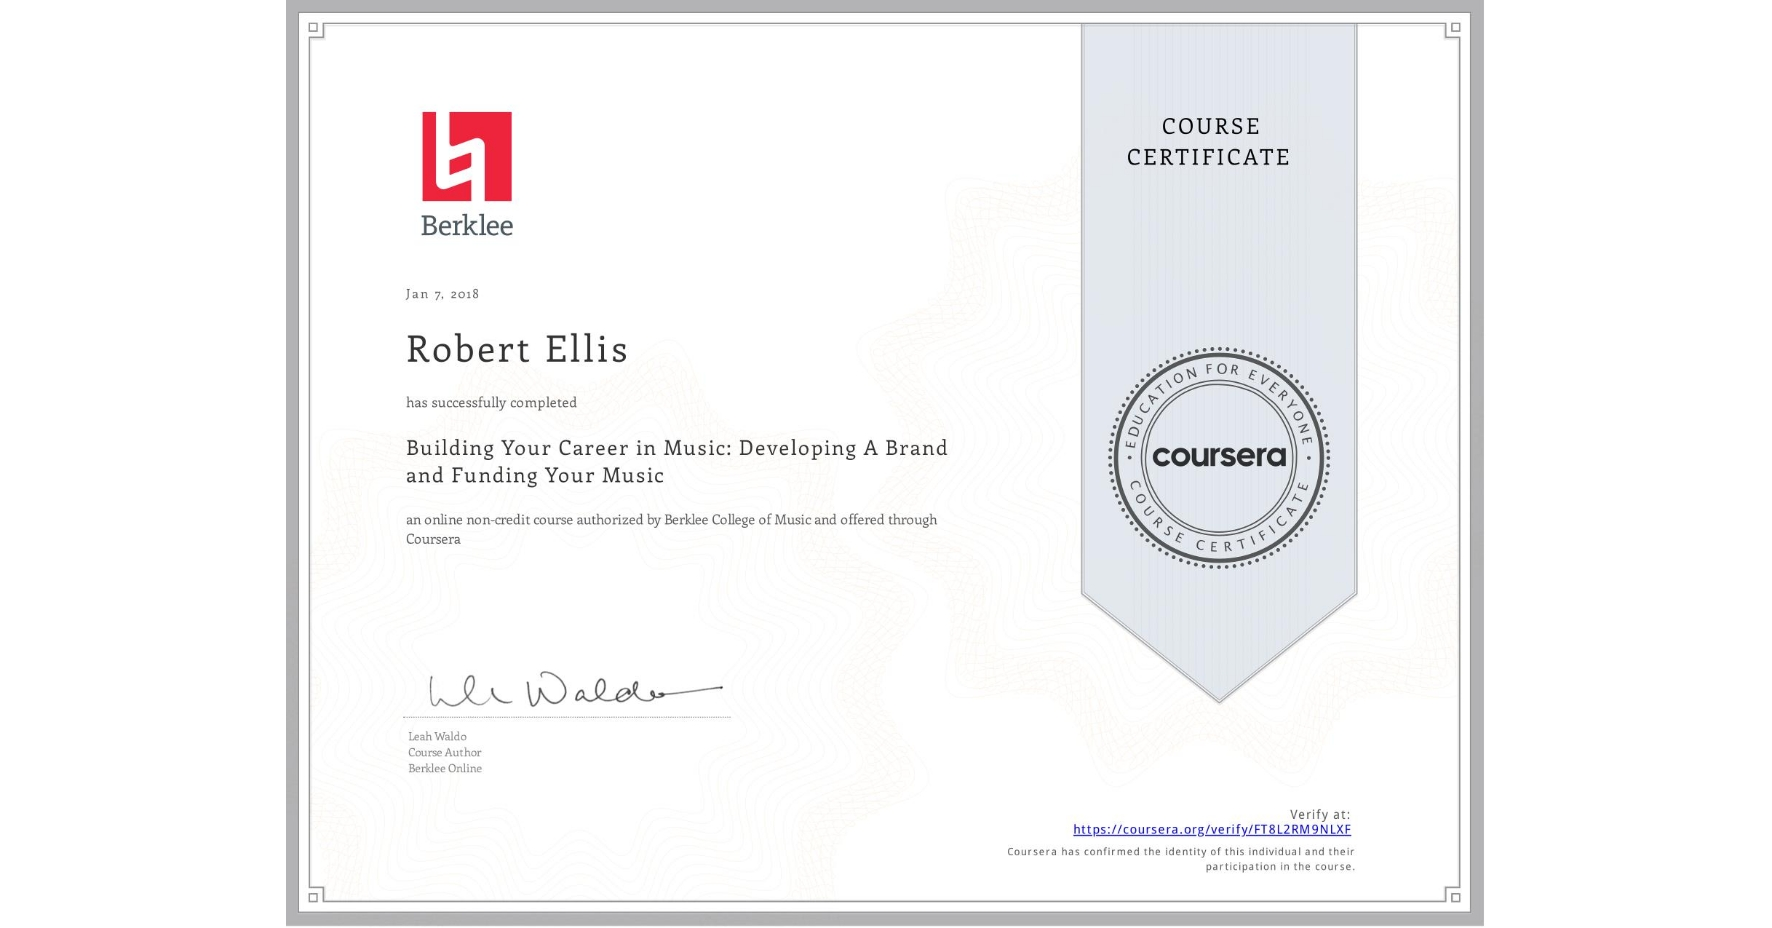 View certificate for Robert Ellis, Building Your Career in Music: Developing A Brand and Funding Your Music, an online non-credit course authorized by Berklee College of Music and offered through Coursera